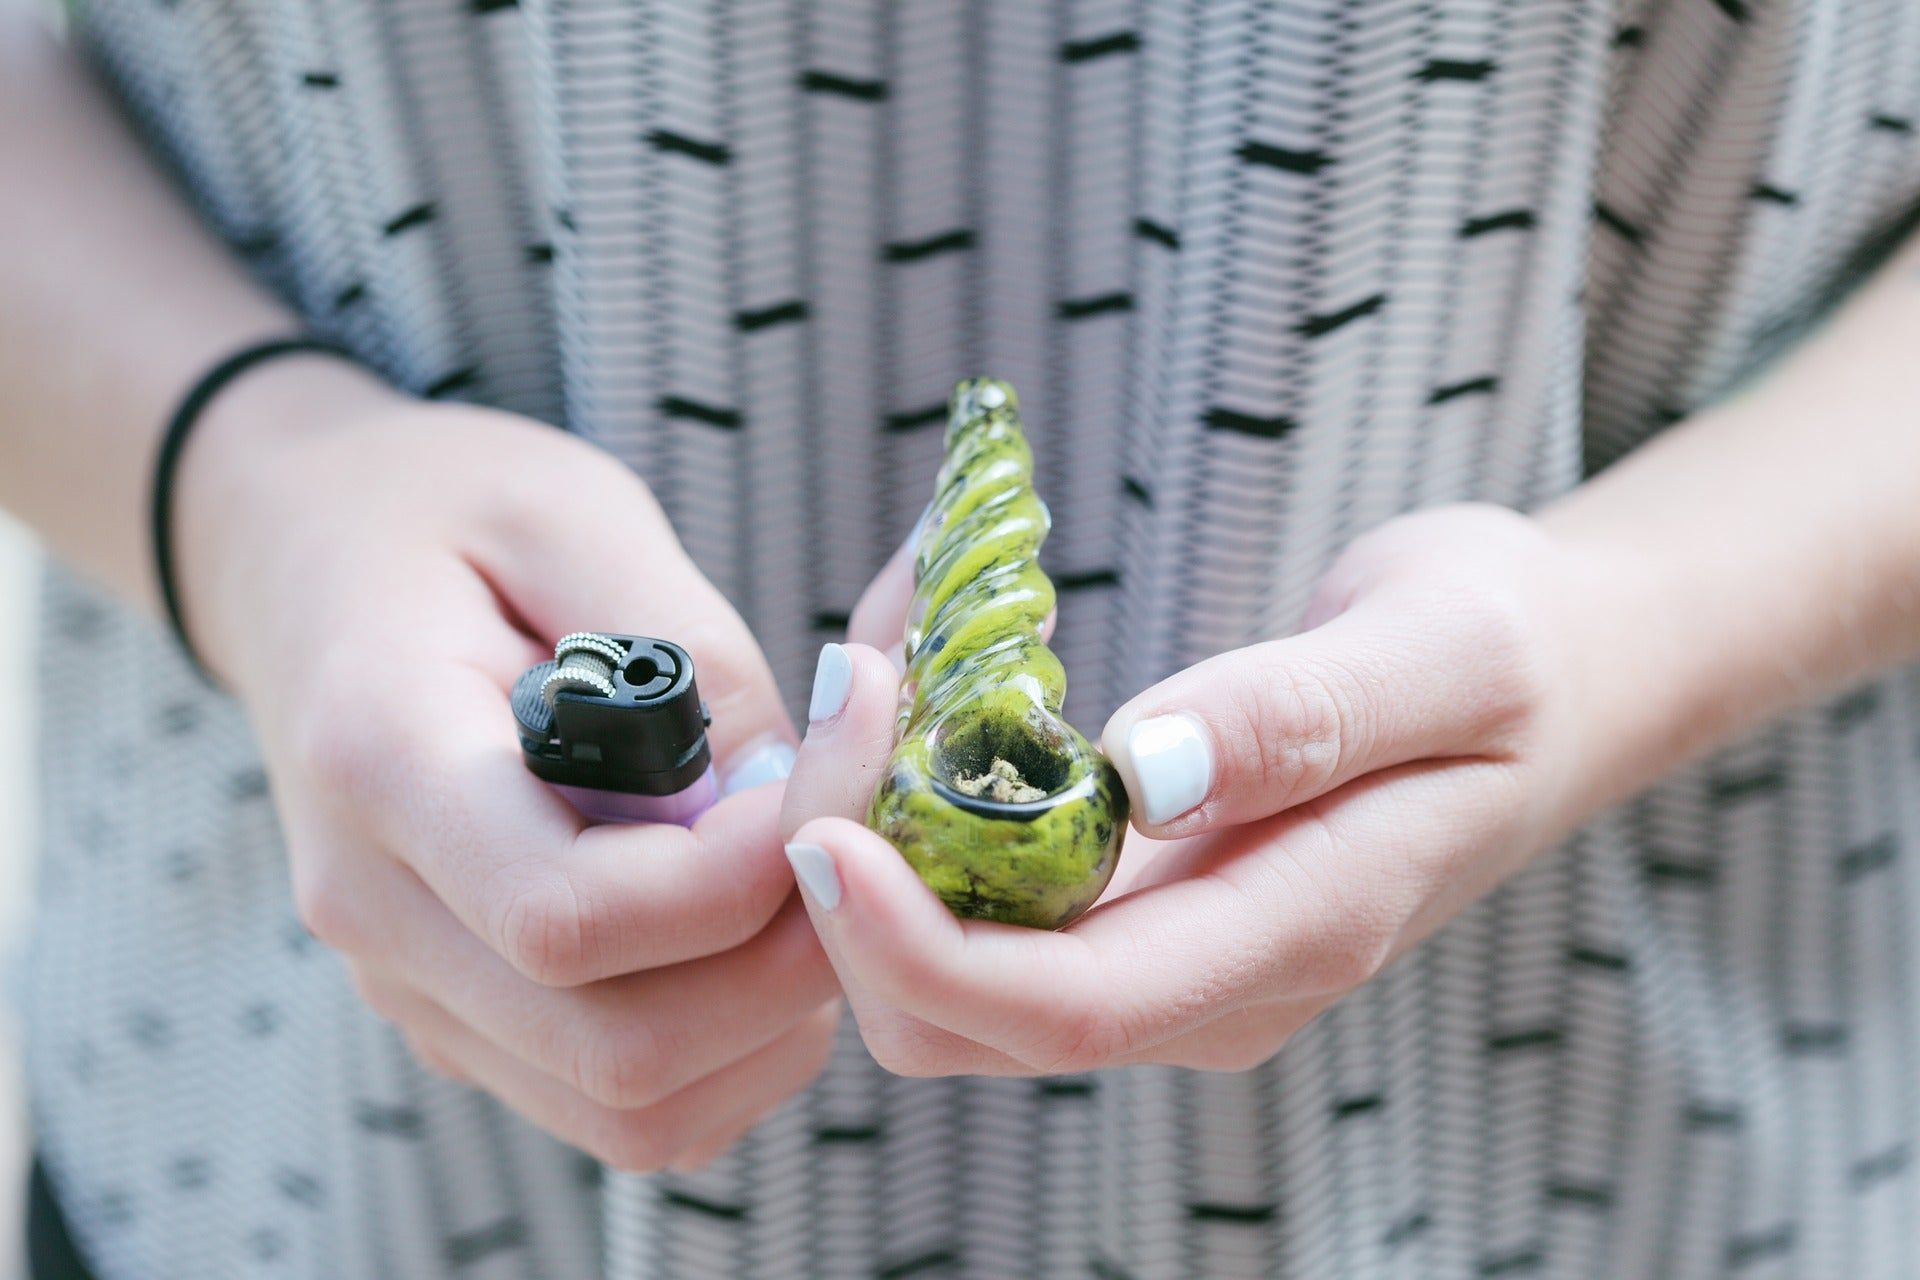 Clean Your Weed Pipe